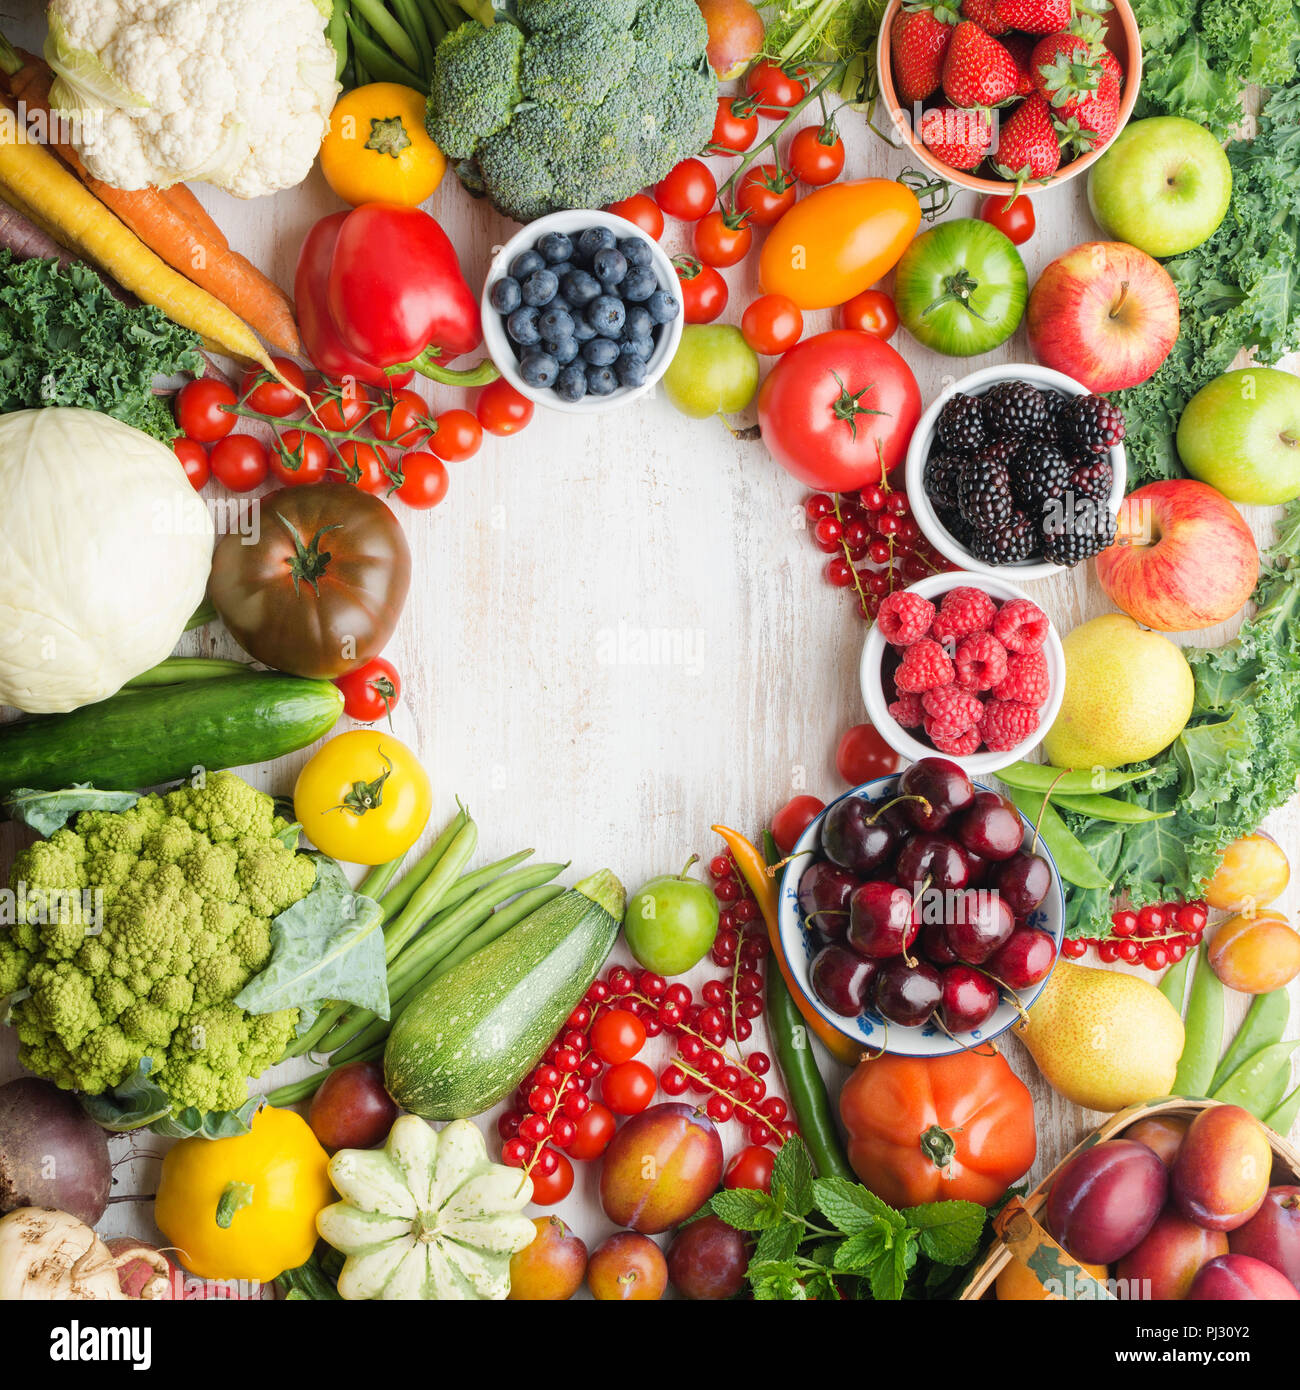 Fresh fruits vegetables berries arranged in a circle frame, cherries peaches strawberries cabbage broccoli cauliflower squash tomatoes carrots beetroot, copy space, top view, aquare selective focus Stock Photo